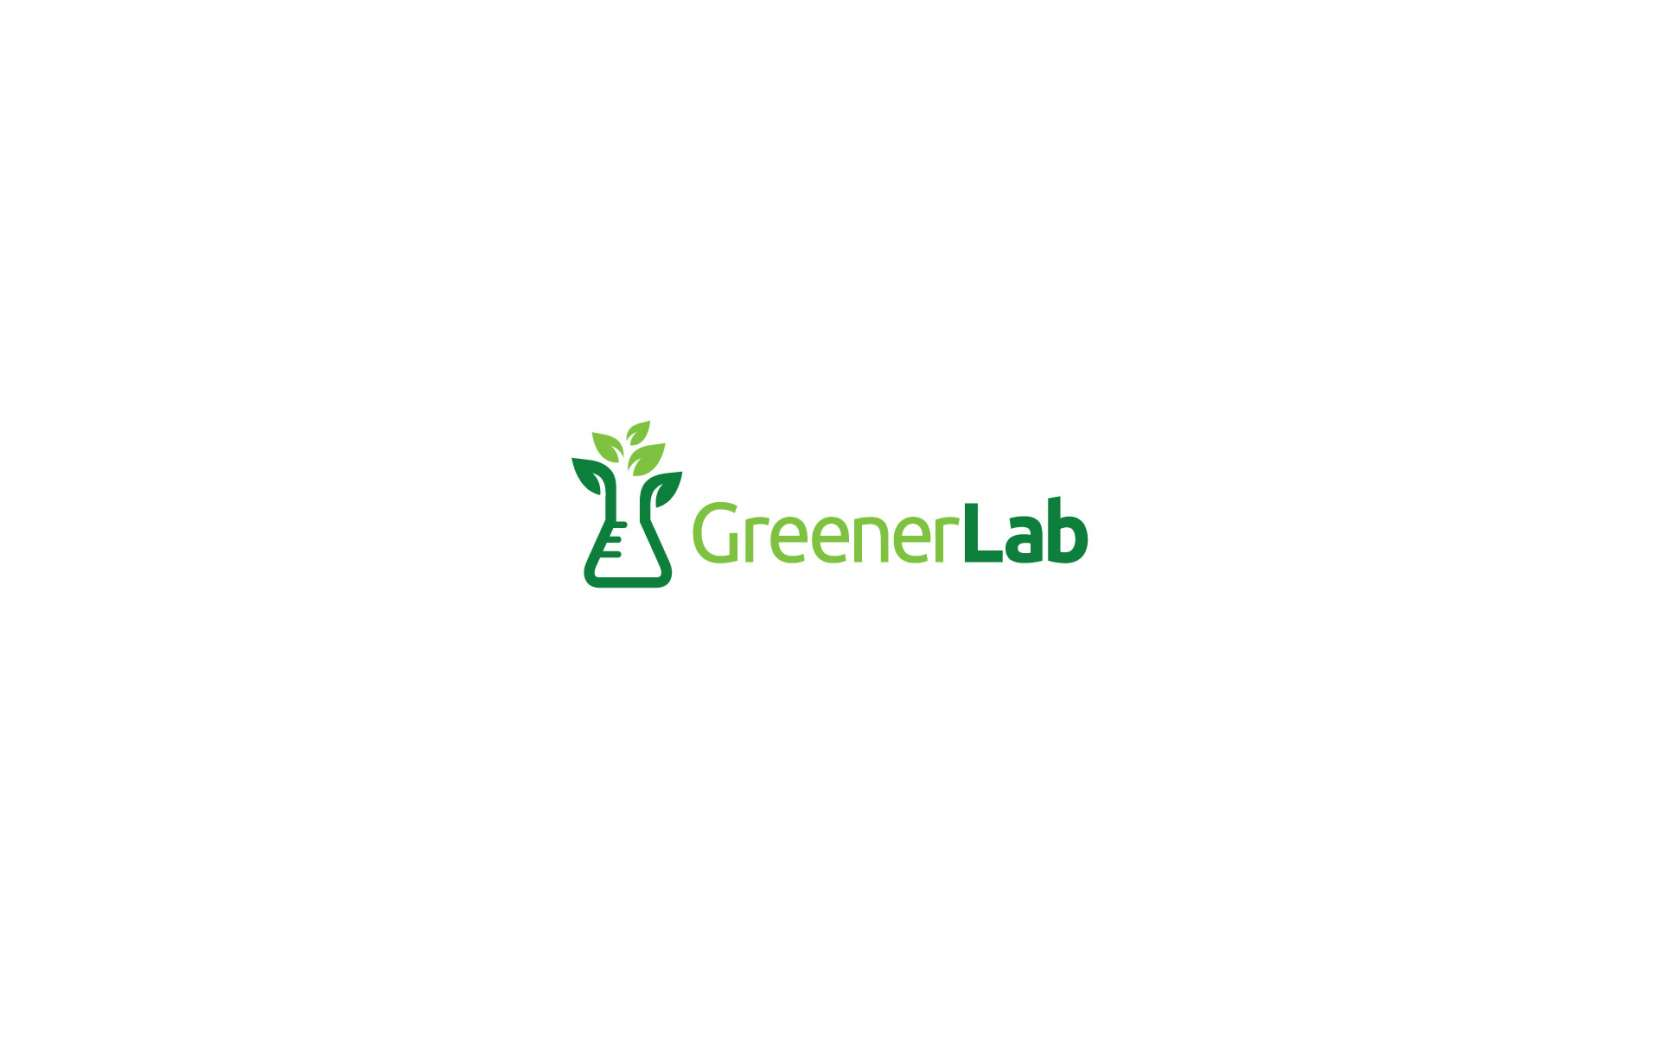 Greener-Lab1.jpg